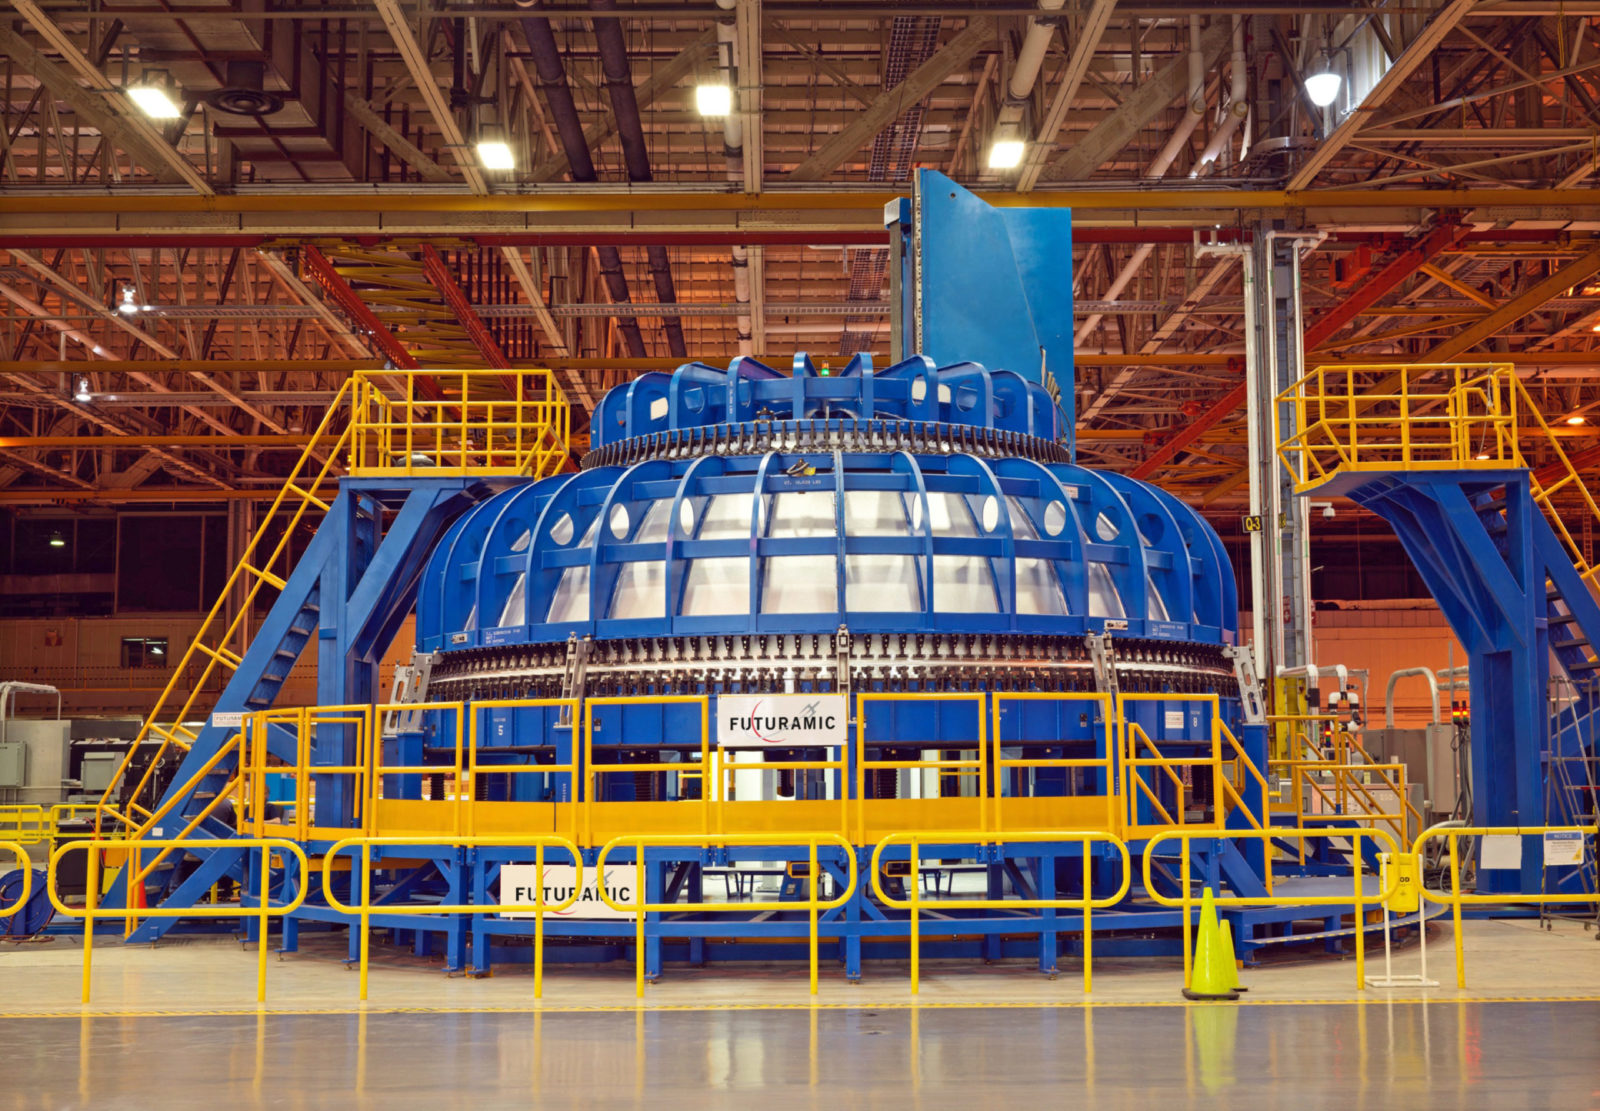 Aerospace Manufacturing -CIRCUMFERENTIAL DOME WELD TOOL, MICHOUD ASSEMBLY FACILITY Image